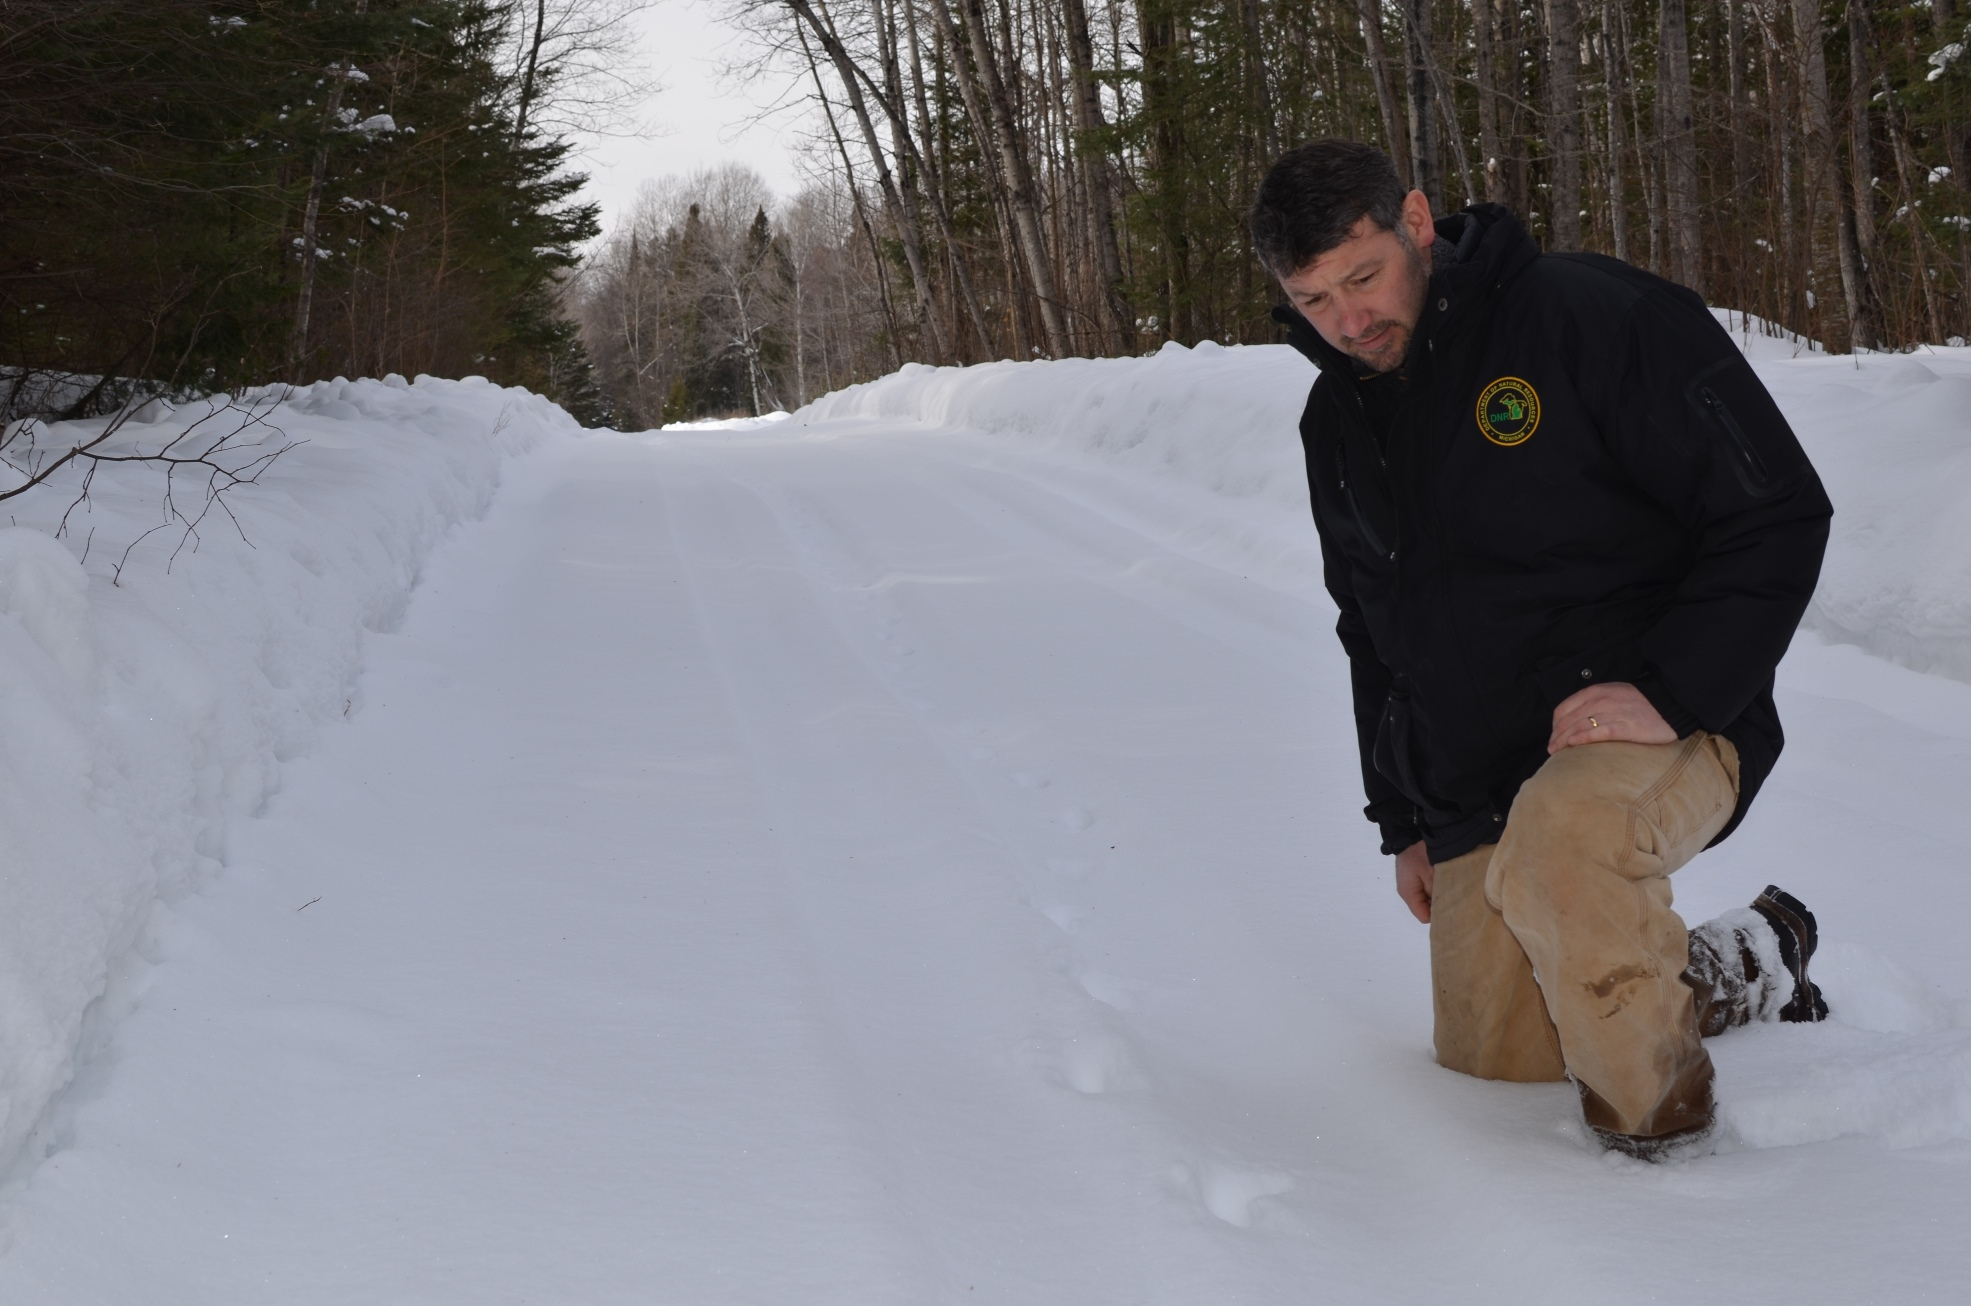 Kevin Swanson, a wildlife management specialist with the DNR's bear and wolf program, inspects a set of coyote tracks on a back road in northern Delta